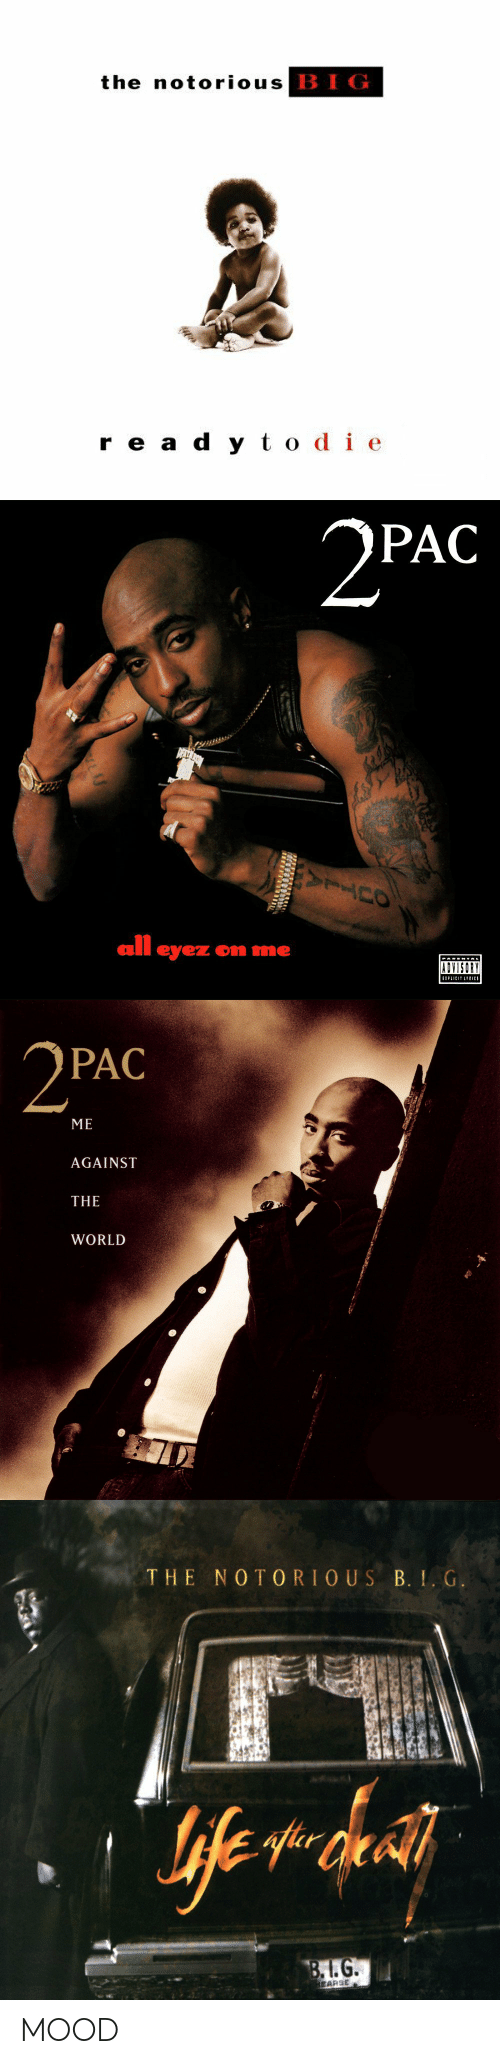 odie: the notorious  BIG  r e a d y t odie   PAC  all eyez on me  ADVISORY   PAC  ME  AGAINST  THE  WORLD   THE NO TORIOUS B. . G.  BLG MOOD